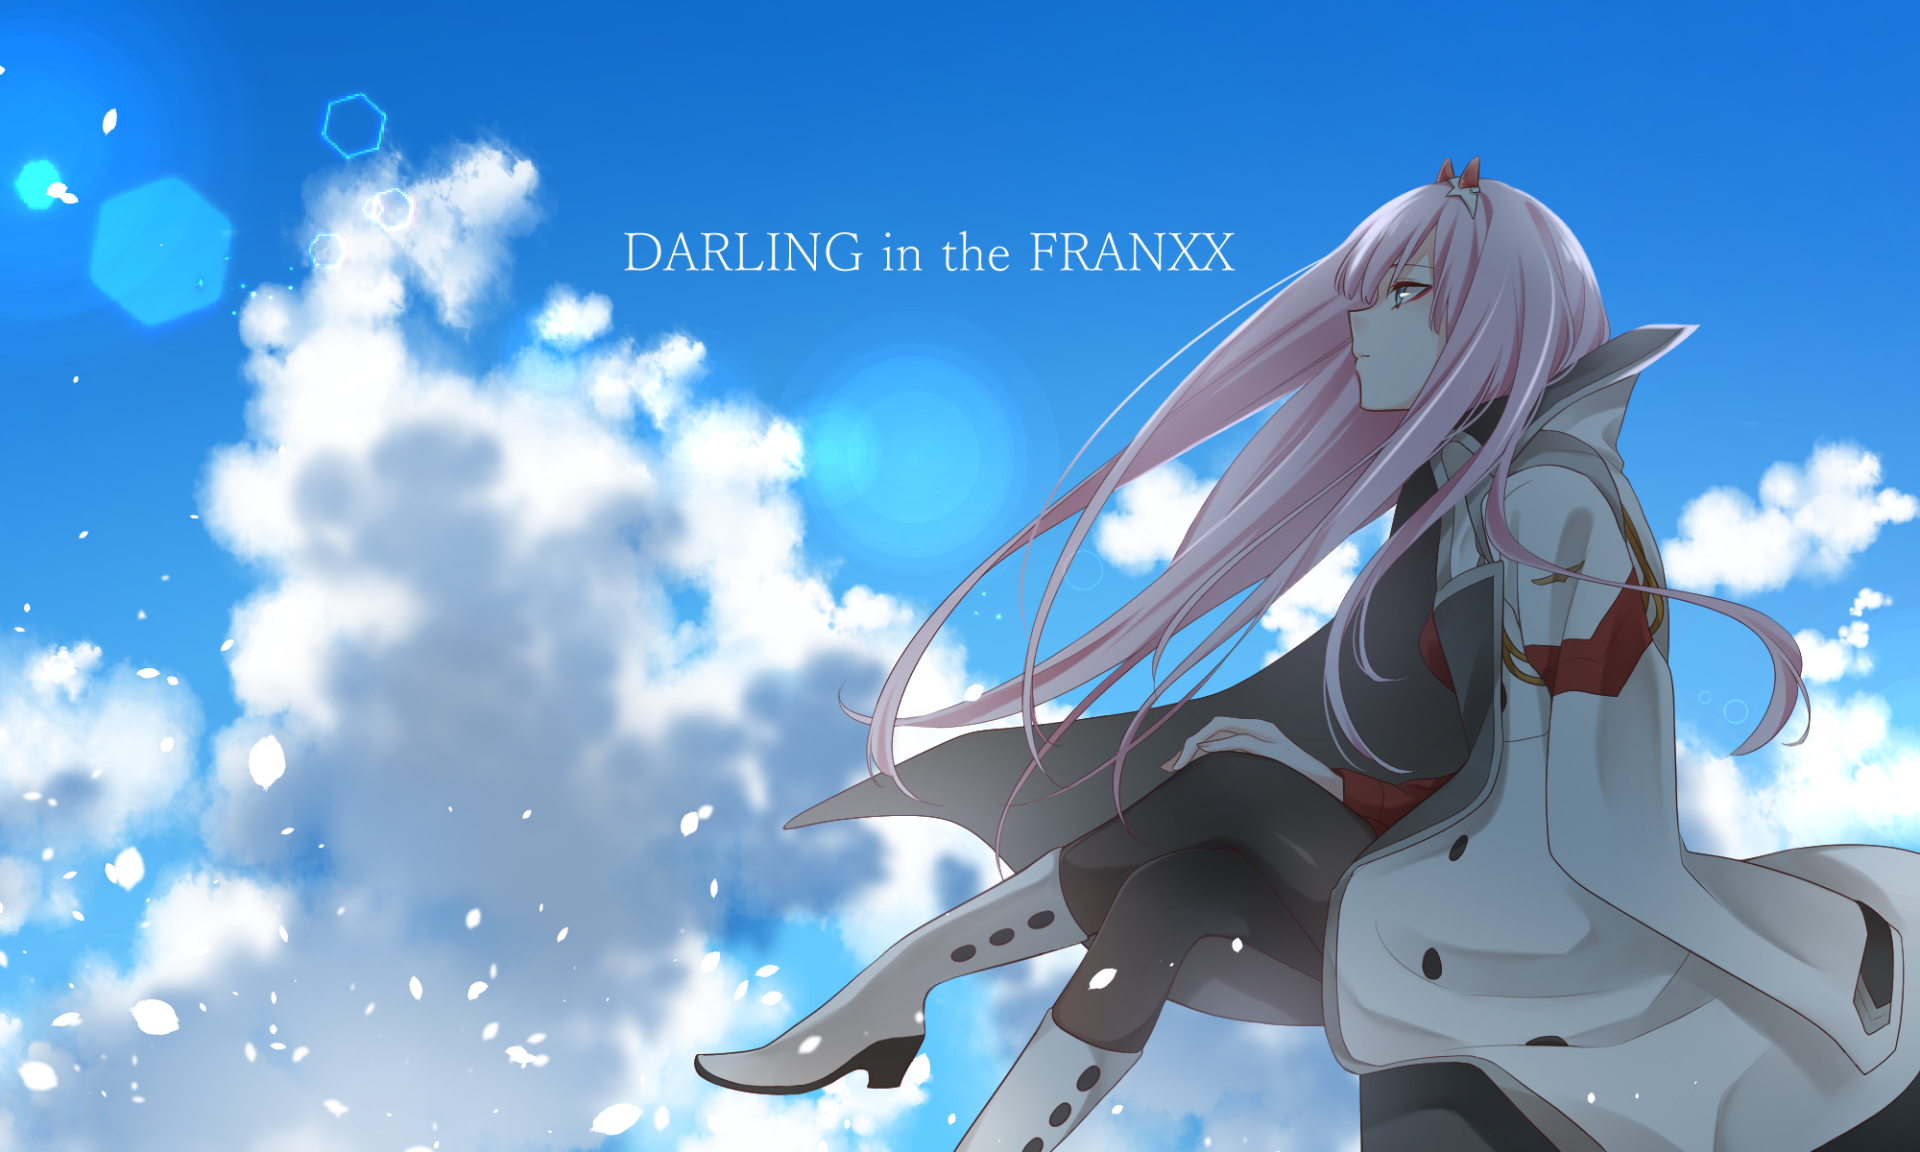 Anime Darling In The Franxx Zero Two Darling In The Franxx Wallpaper Darling In The Franxx Zero Two Anime